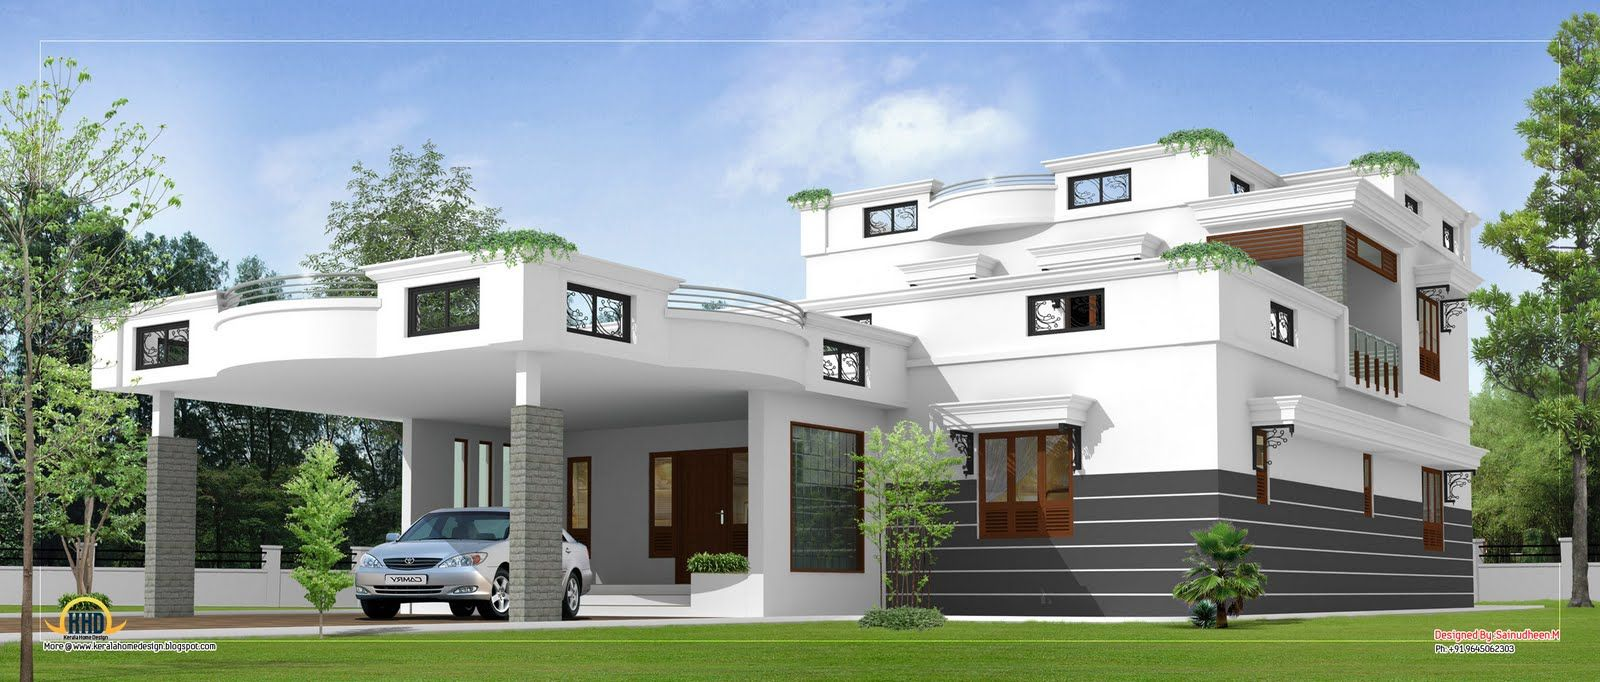 1000 images about kerala home on pinterest kerala home design and traditional modern home designs